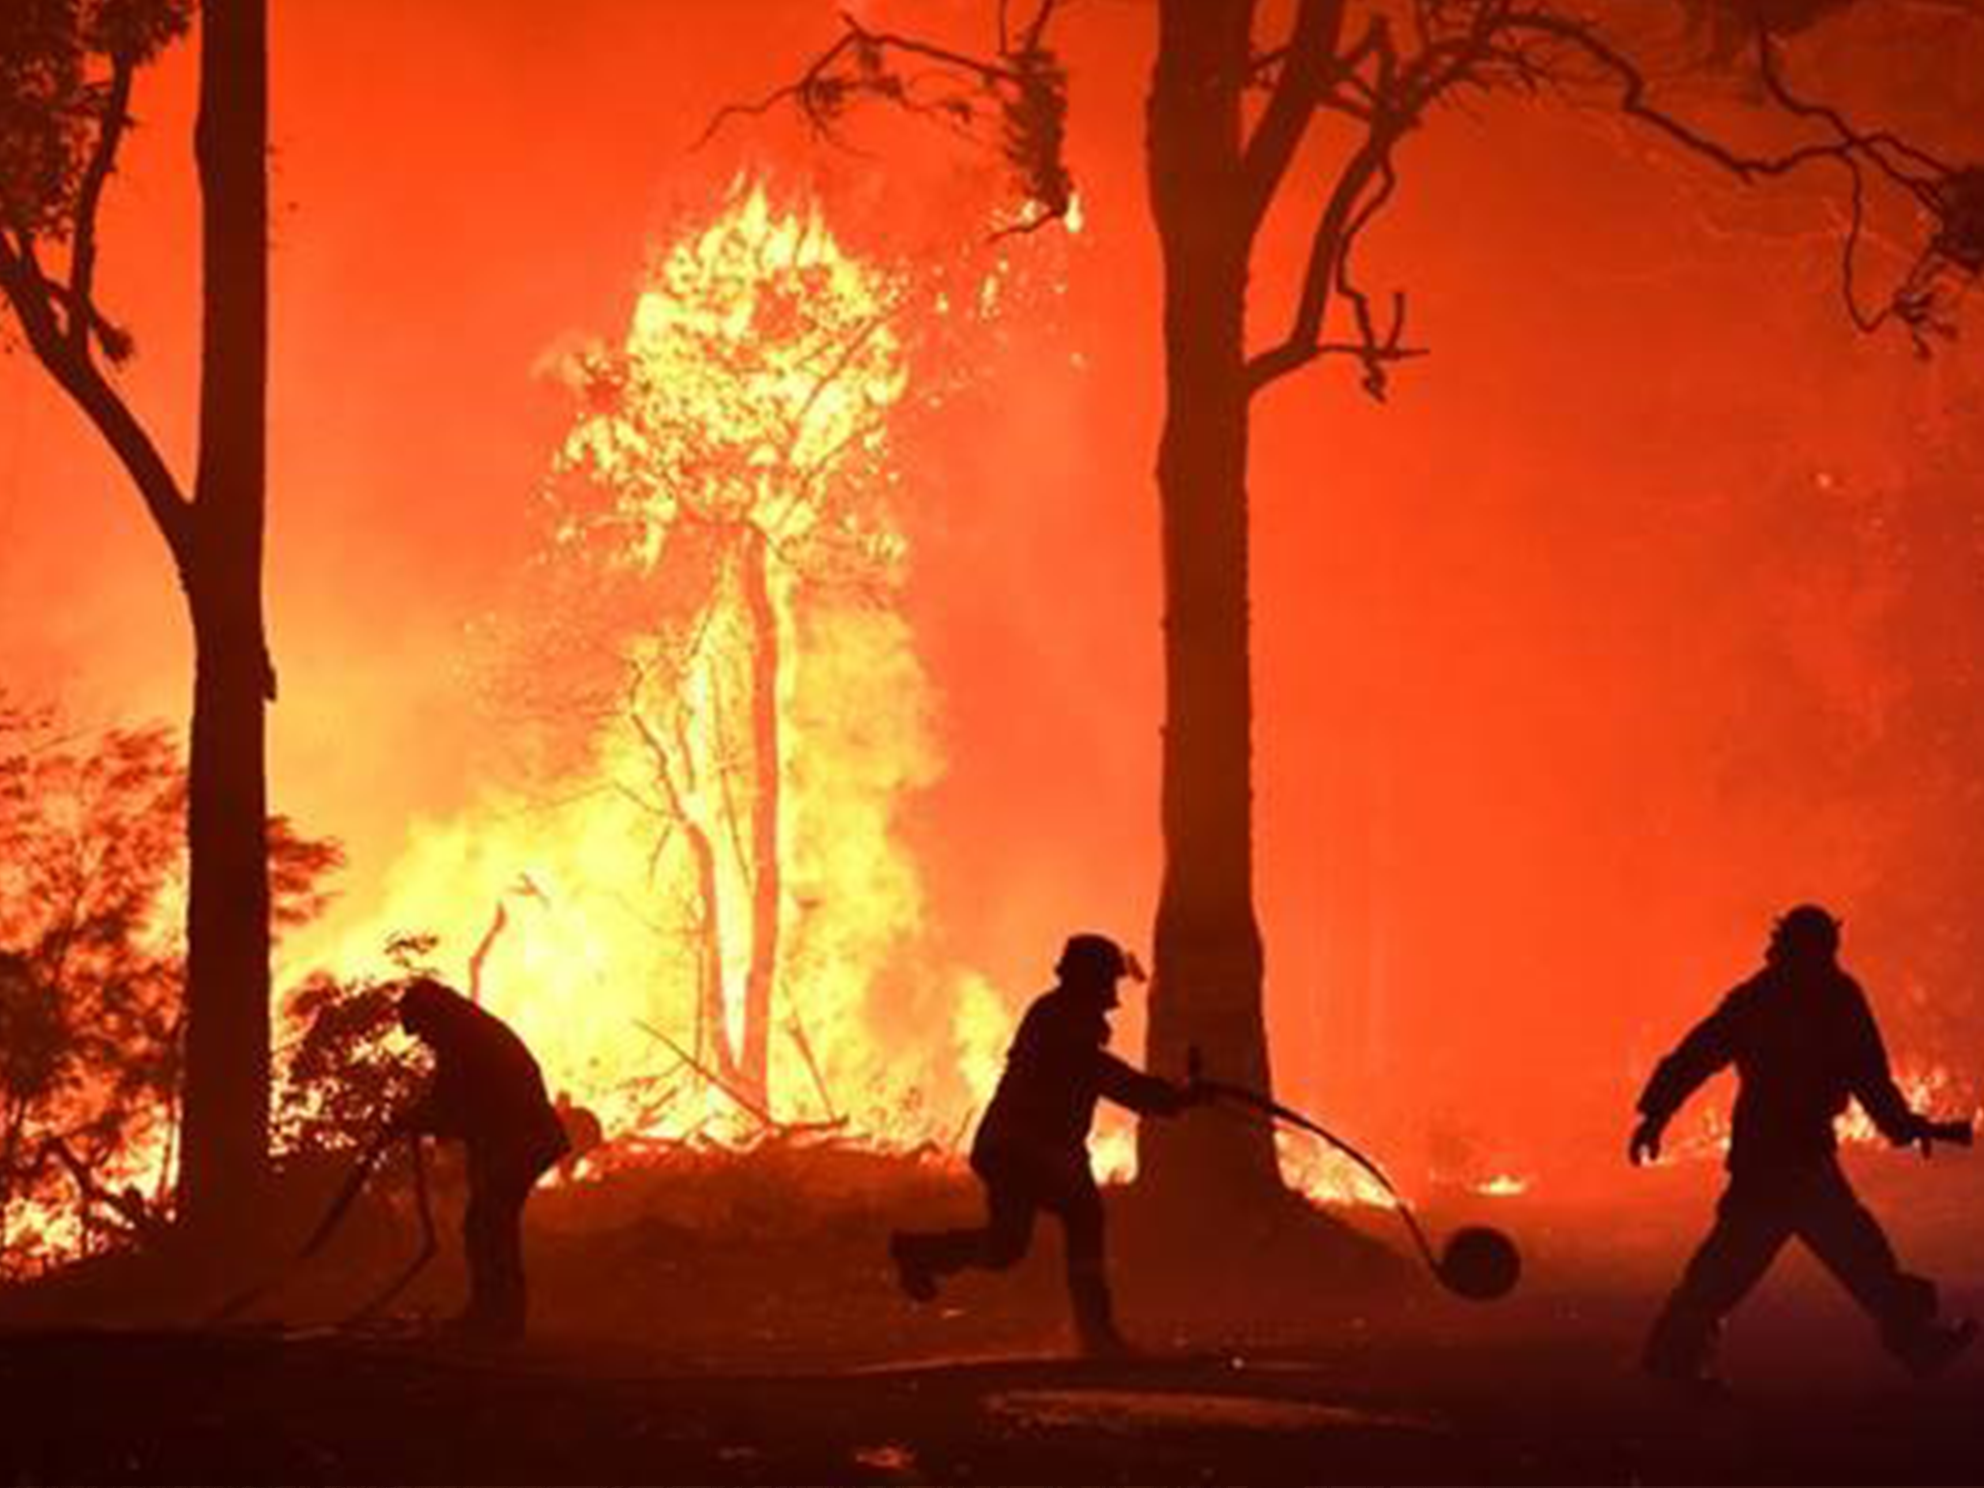 Australian Firefighters battling a blaze. Photo provided by PBS.org.